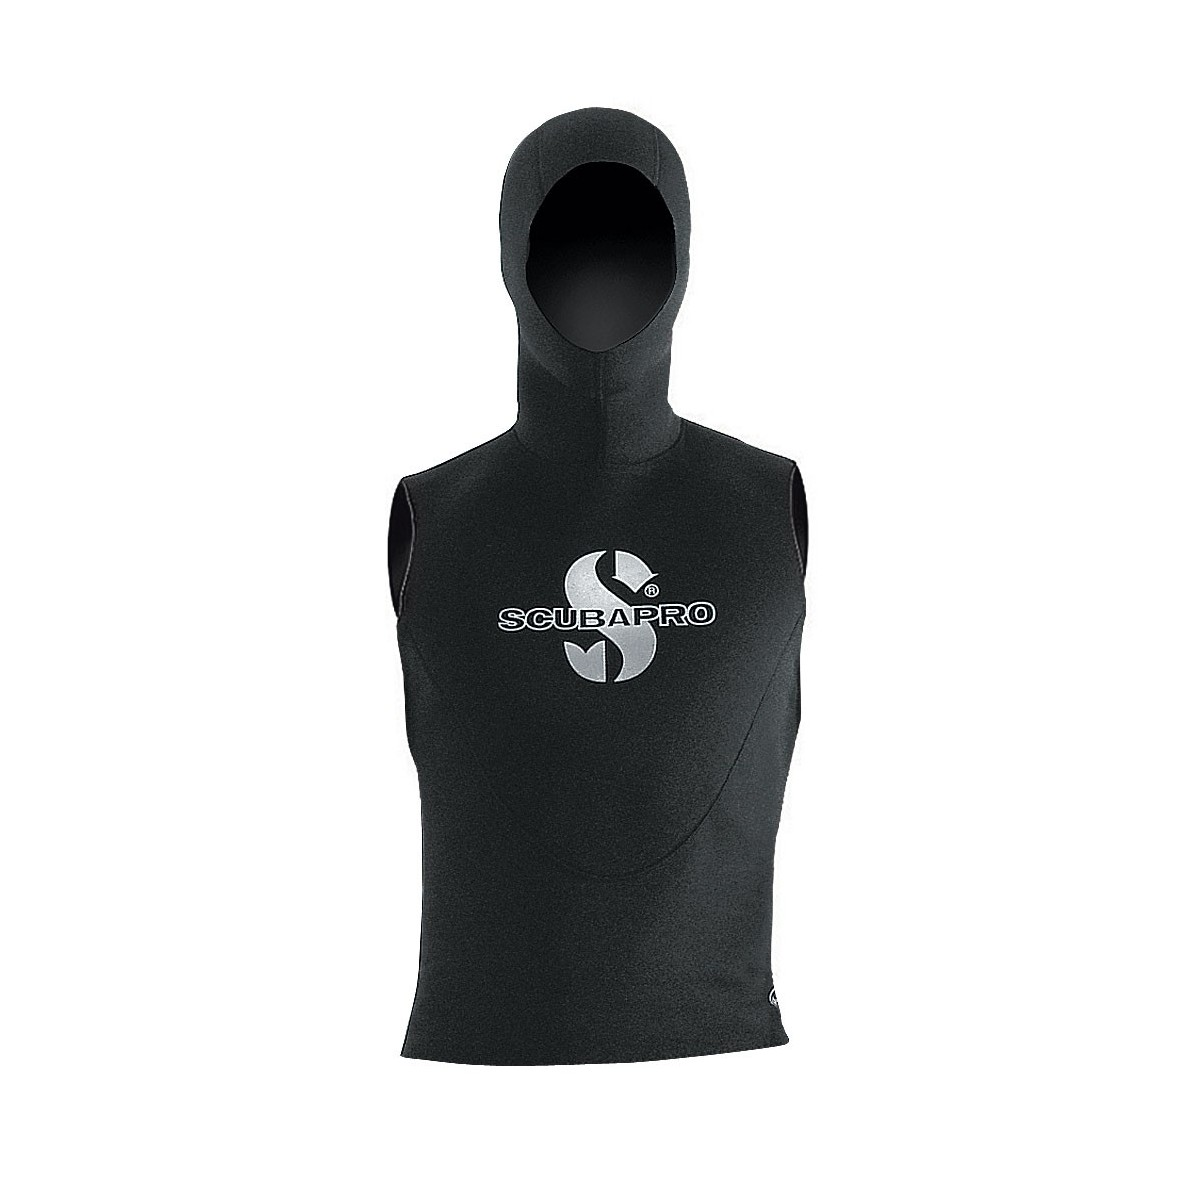 Scubapro Everflex Hooded Diving Vest 5mm